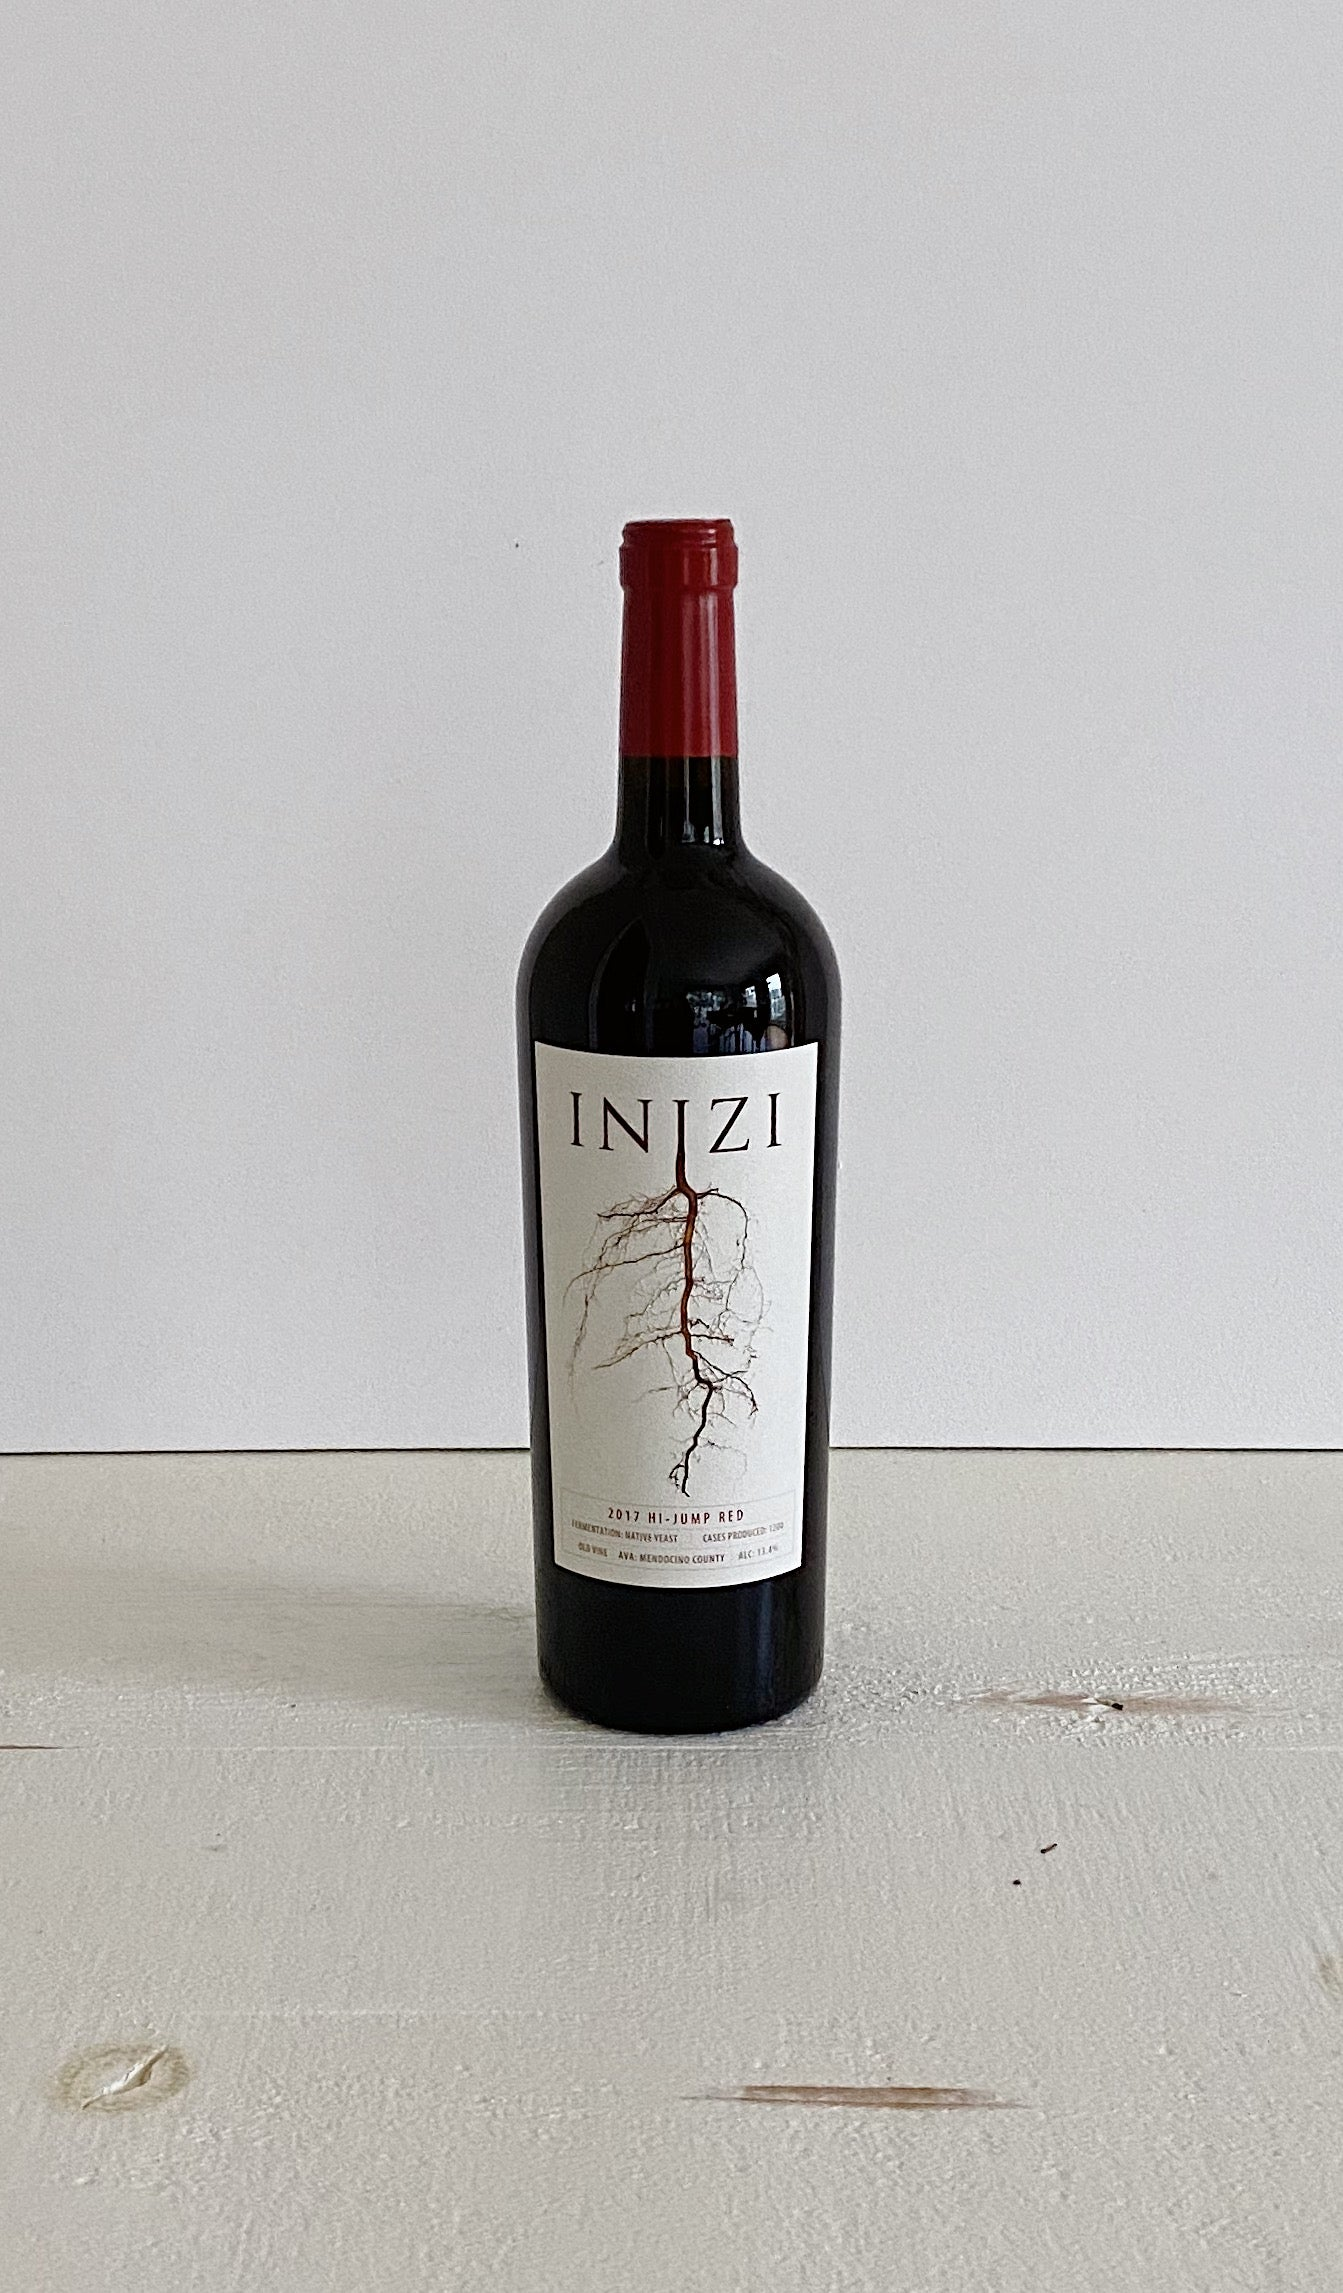 INIZI Red Blend (Montepulciano/Dolcetto blend), Hi-Jump, Mendocino